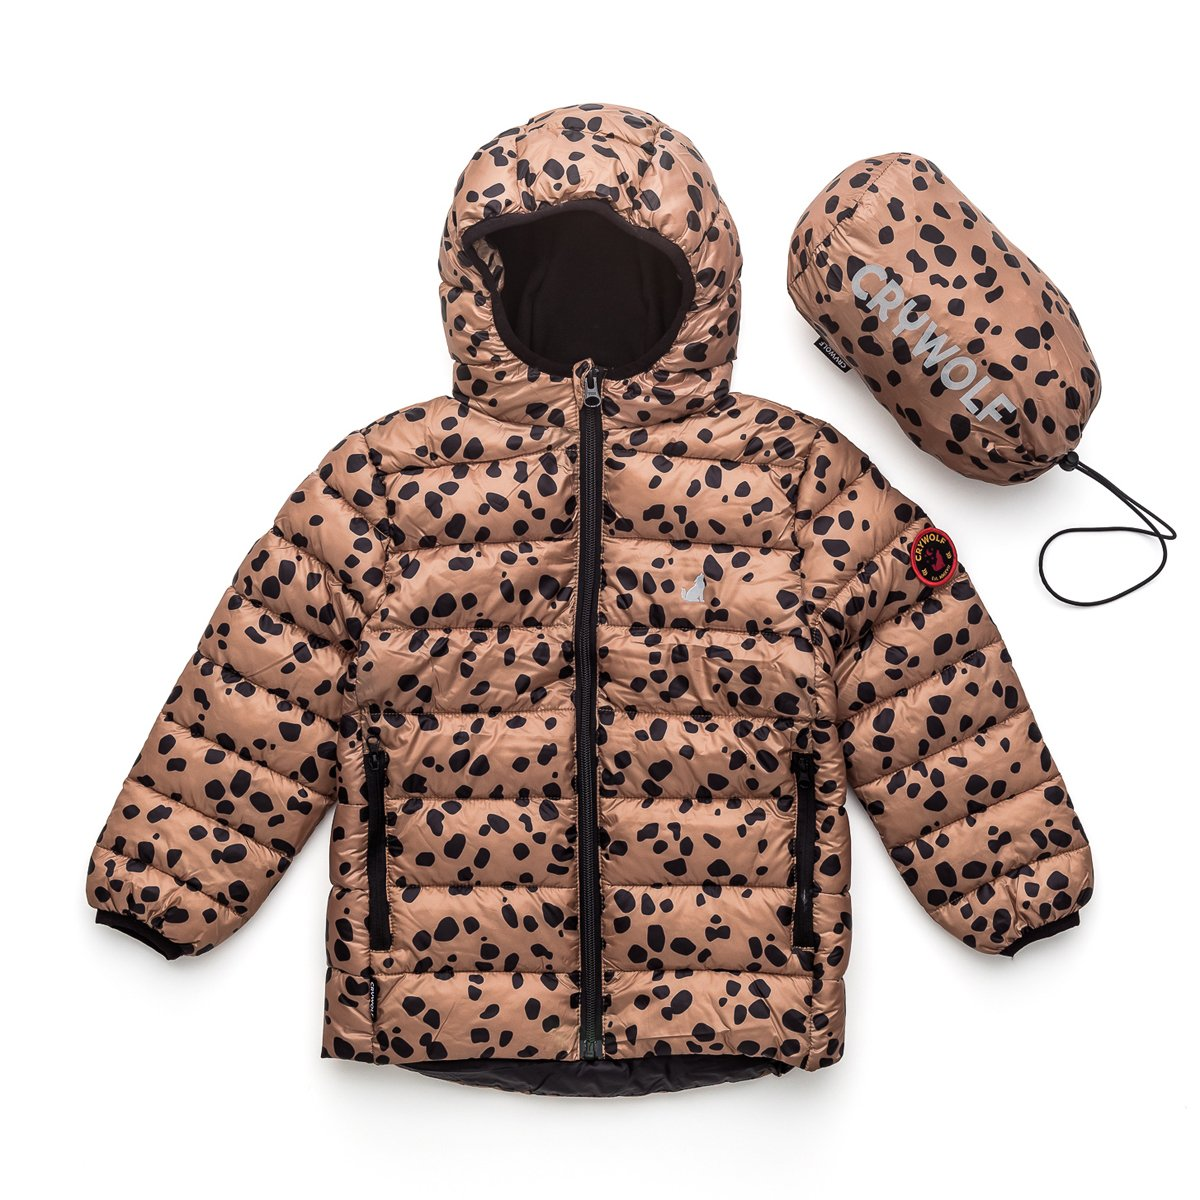 Crywolf Eco Puffer Jacket - Stones